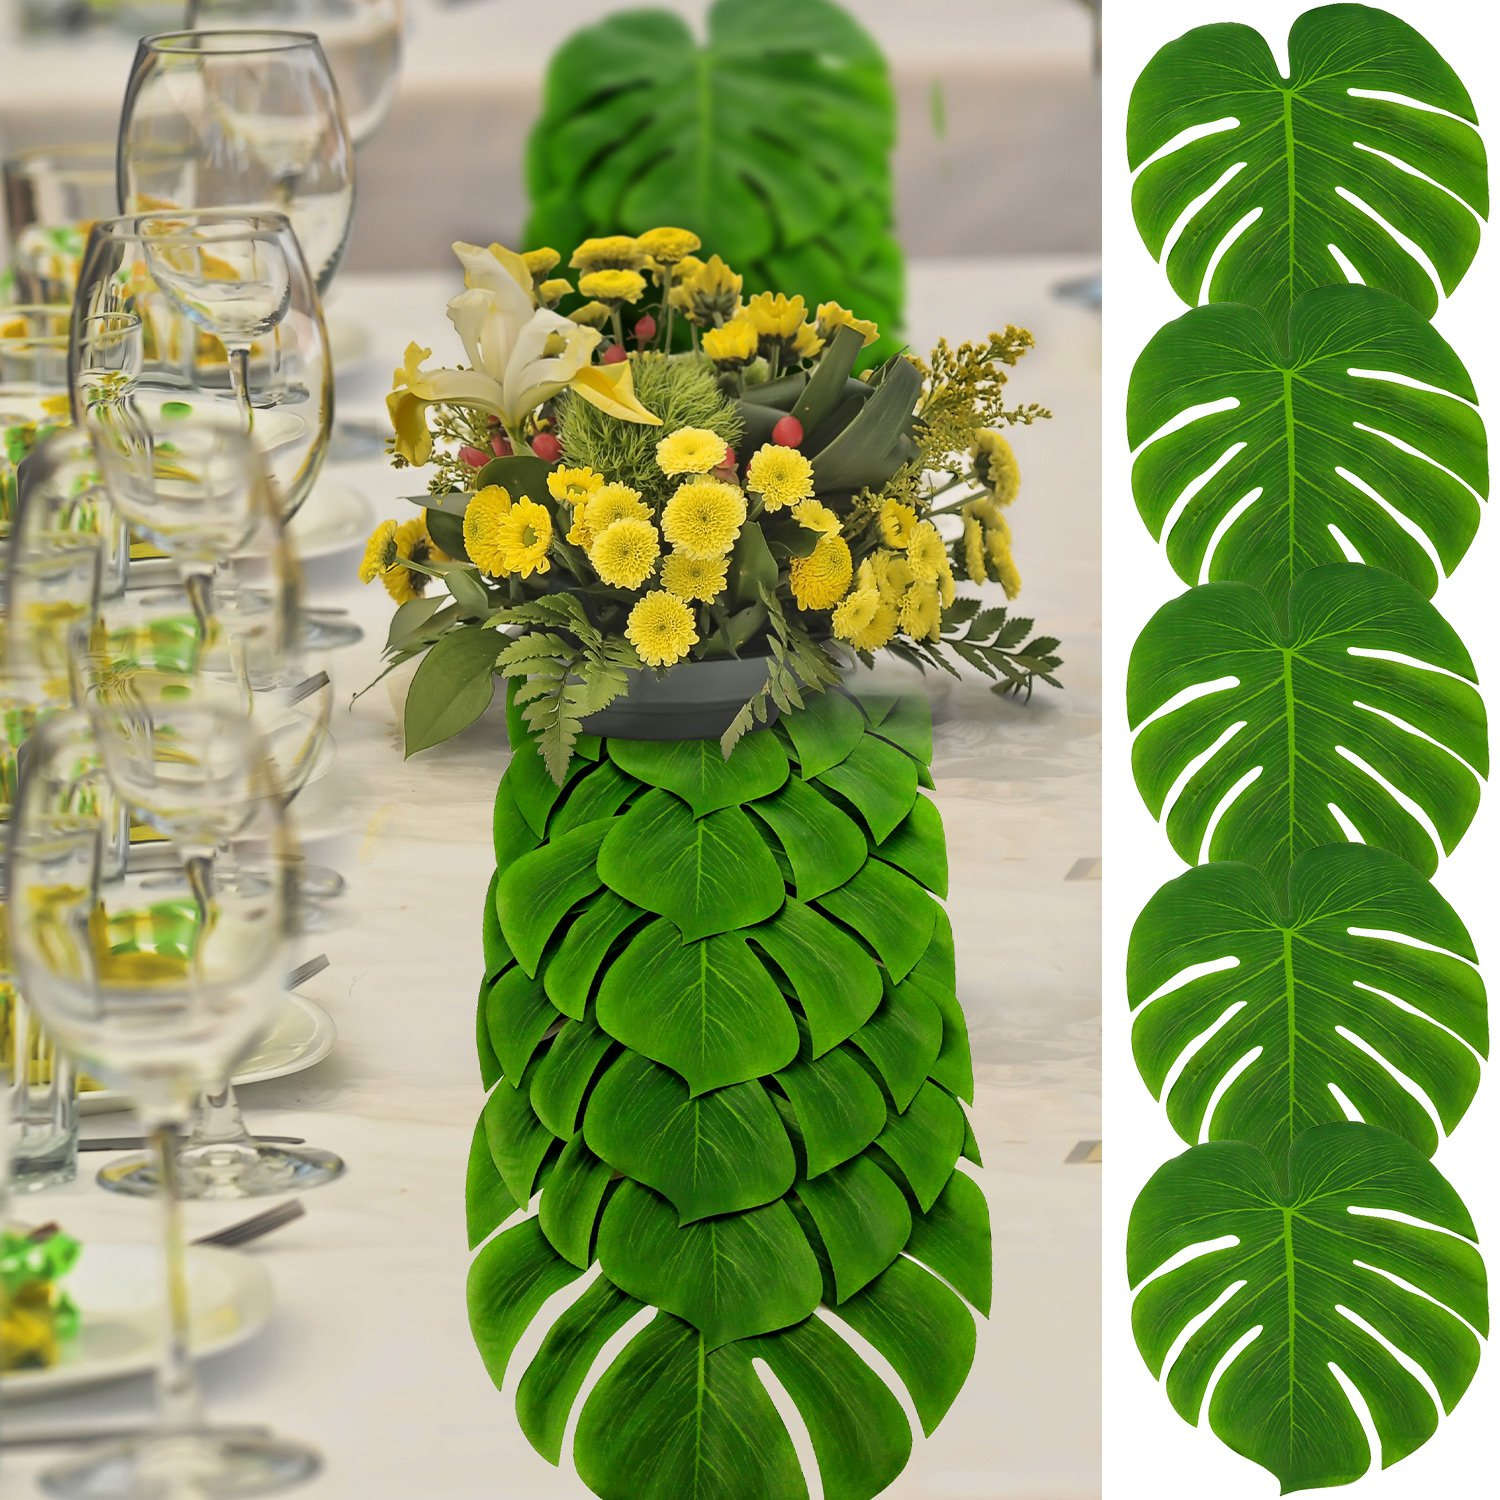 Shappy 50 Pieces Artificial Tropical Palm Leaves Large Size 13.8 by 11.4 Inch with 100 Pieces Double-Side Adhesive Points for Hawaiian Luau Party Jungle Beach Theme Table Runner